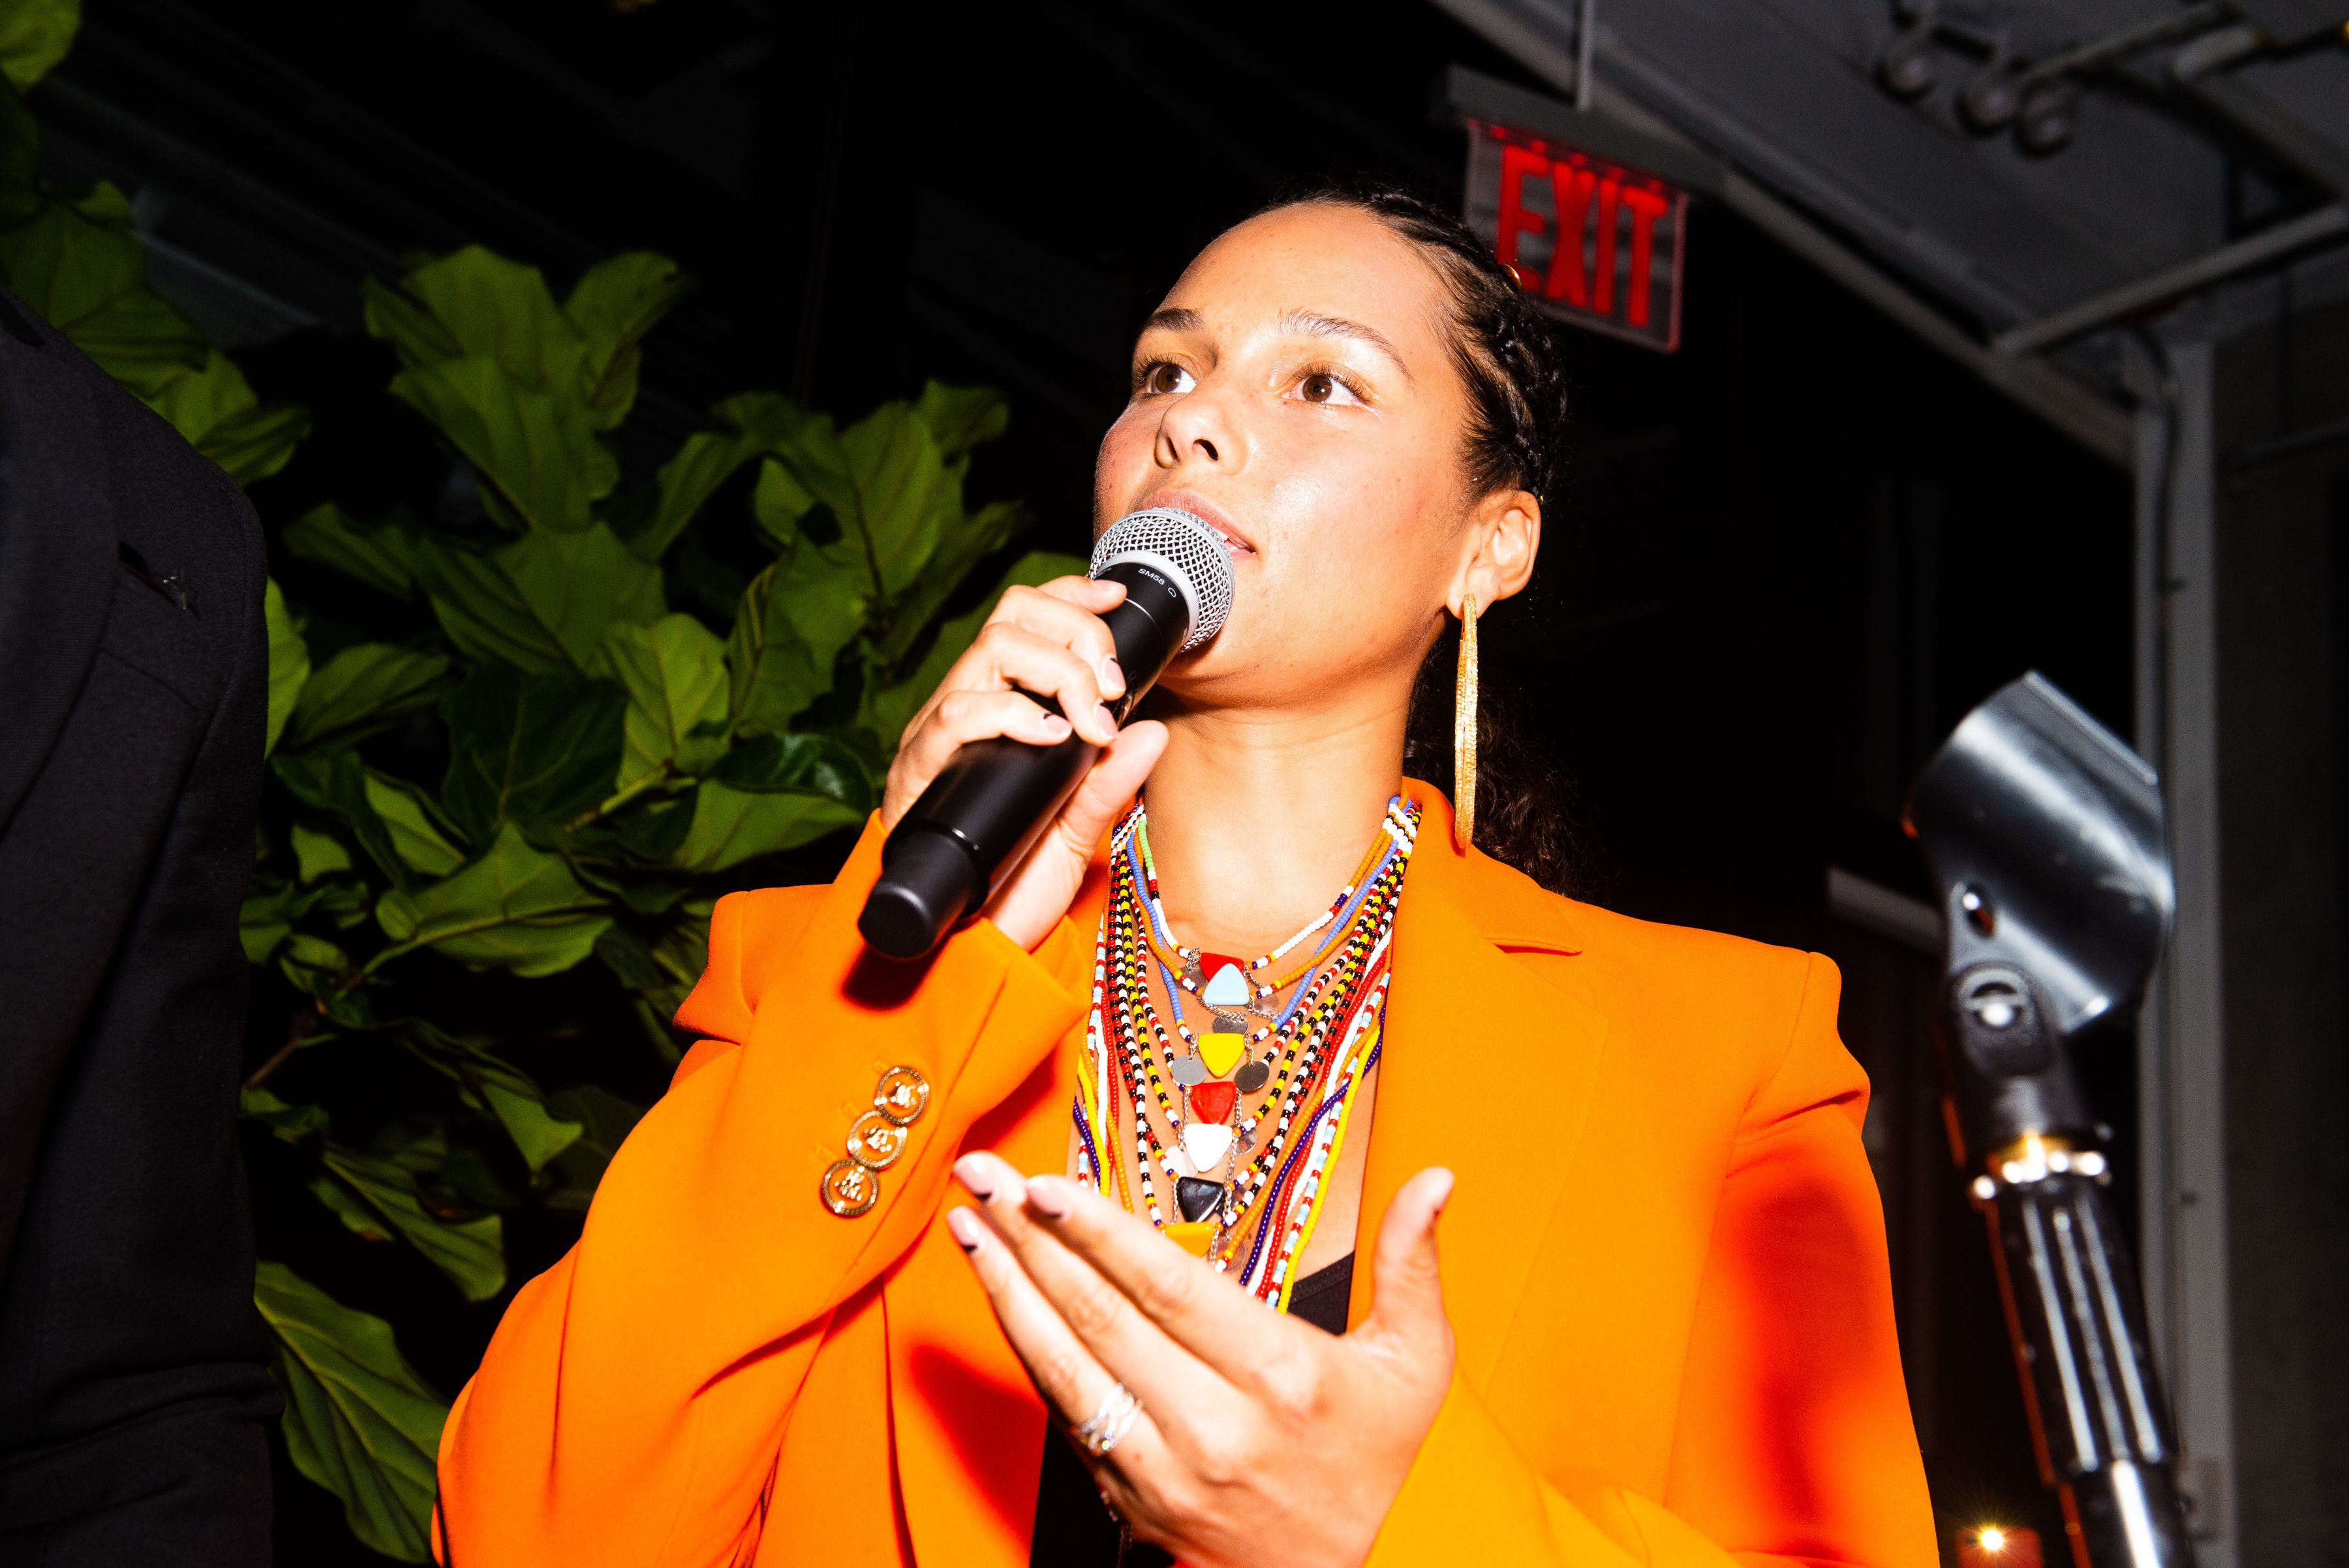 Rolling Stone: Alicia Keys Announces Music Initiative for Female Advancement